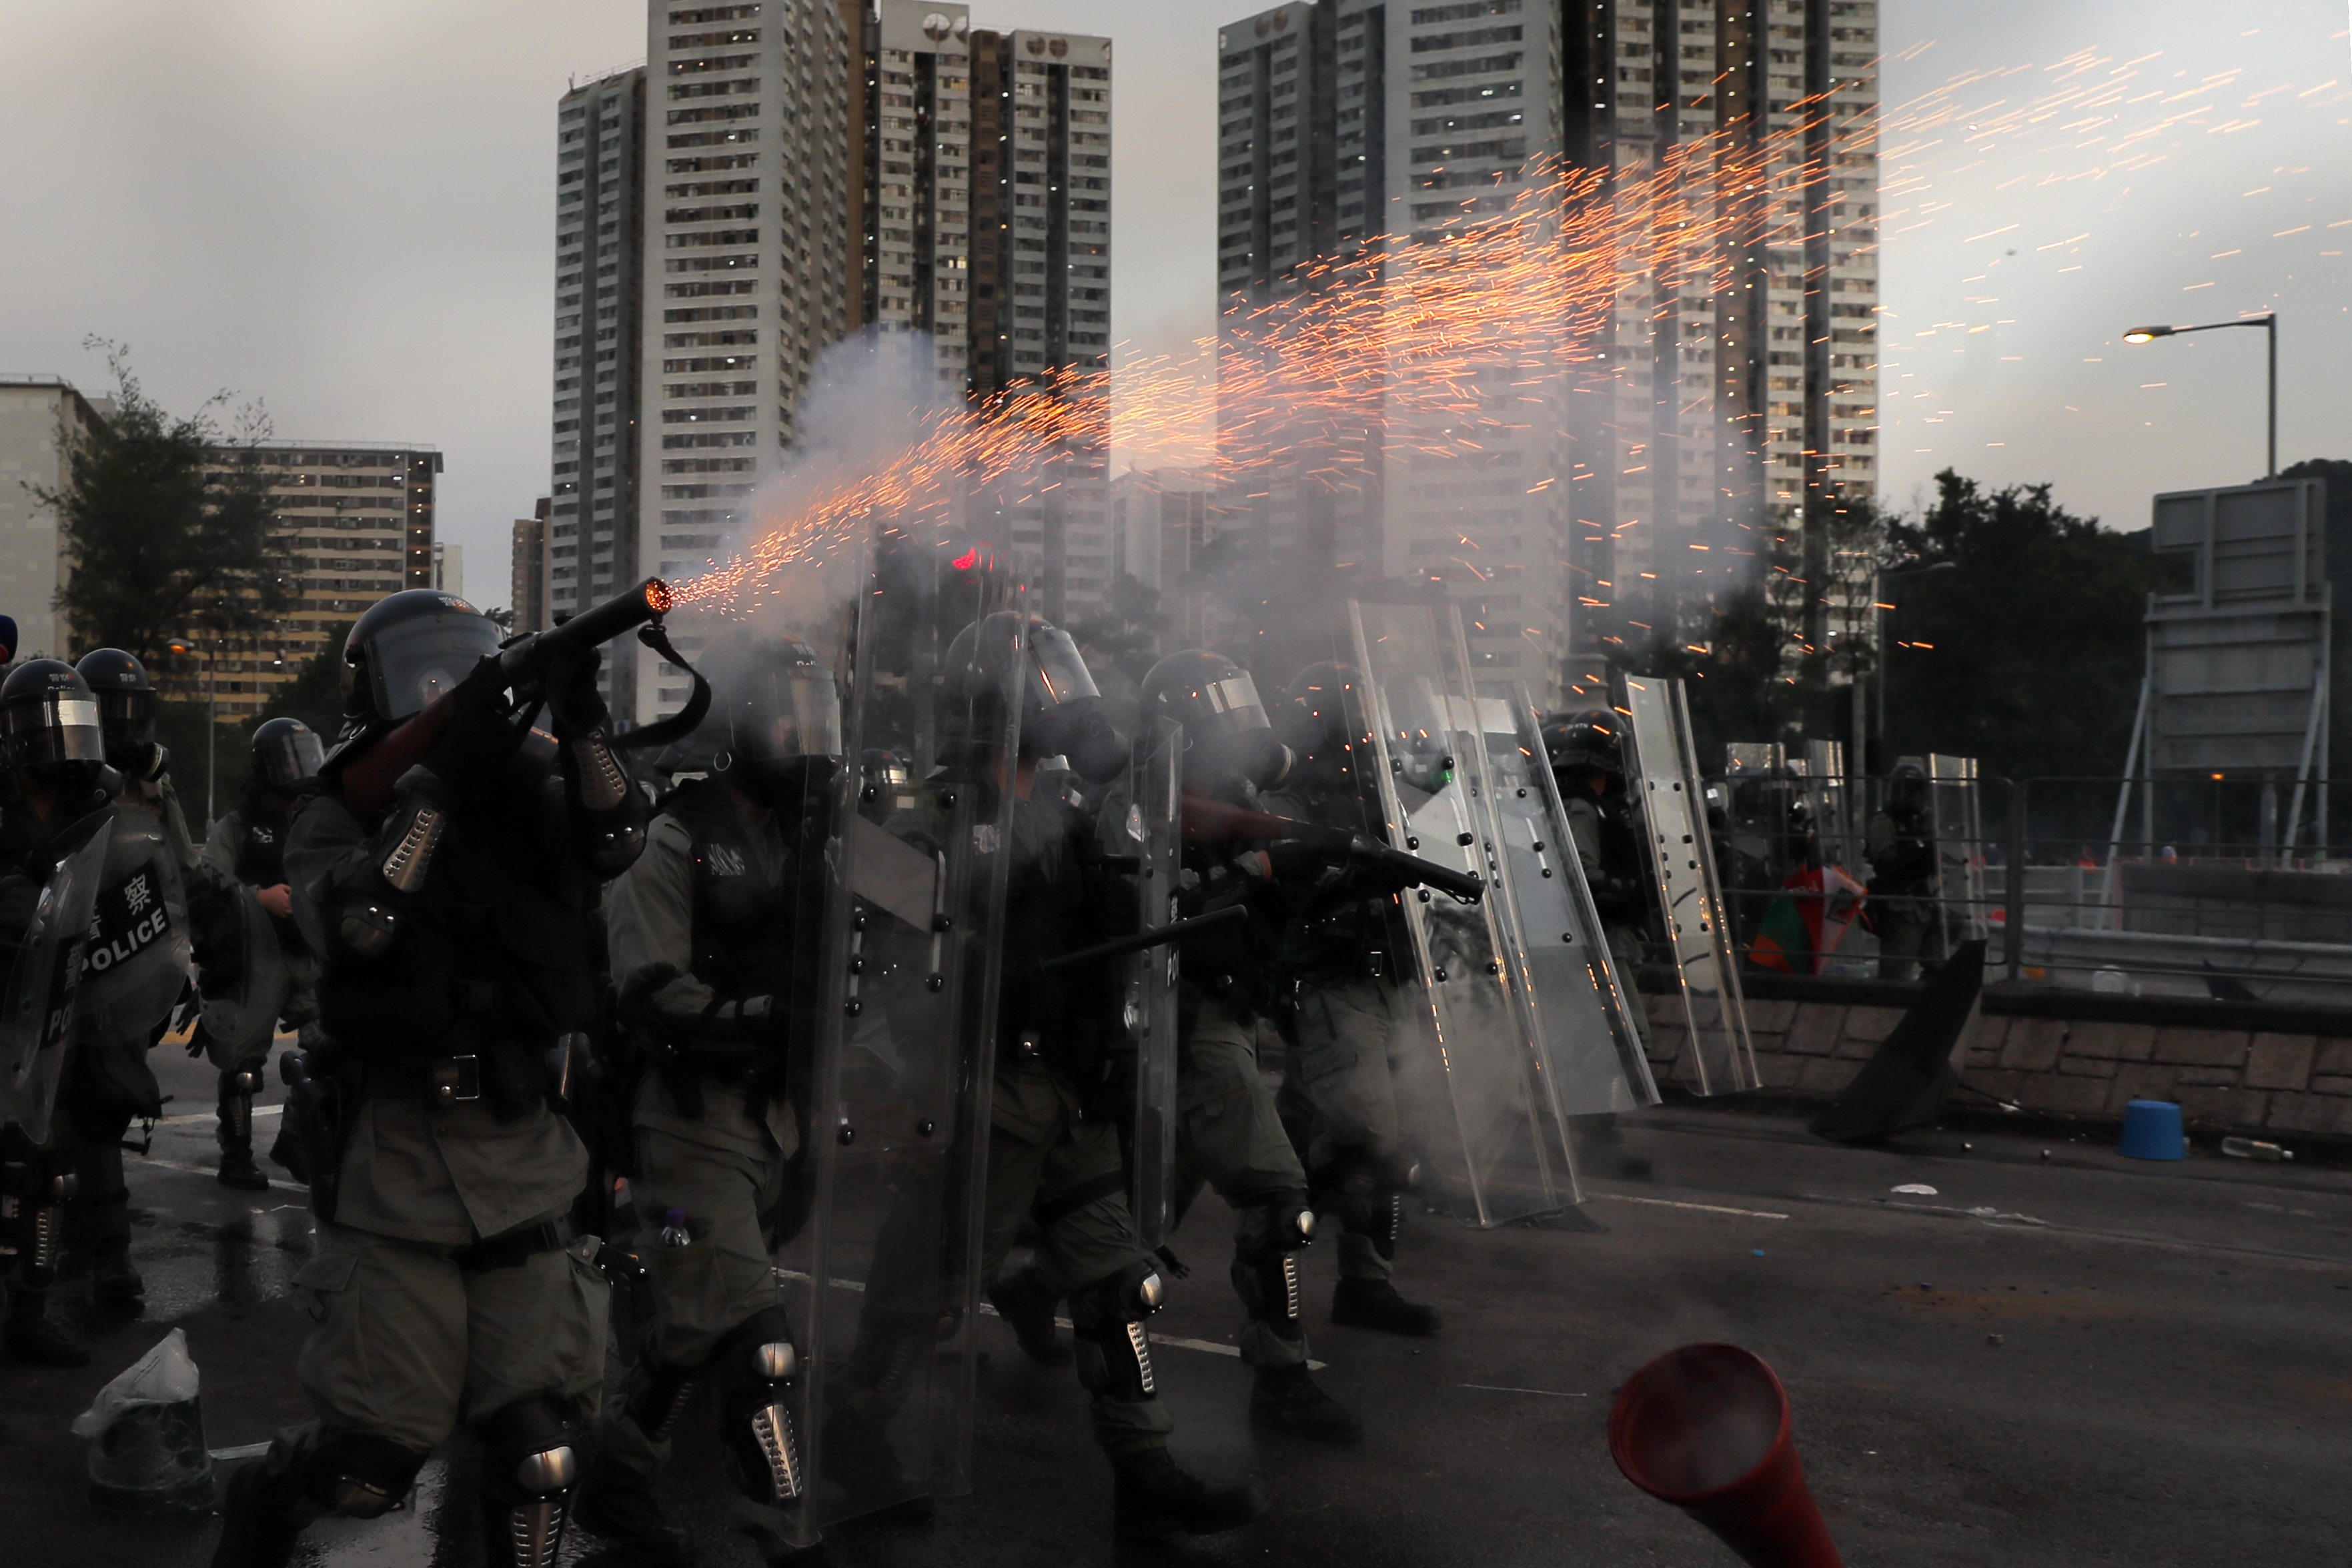 Riot police fire tear gas during a confrontation with protesters on August 5.